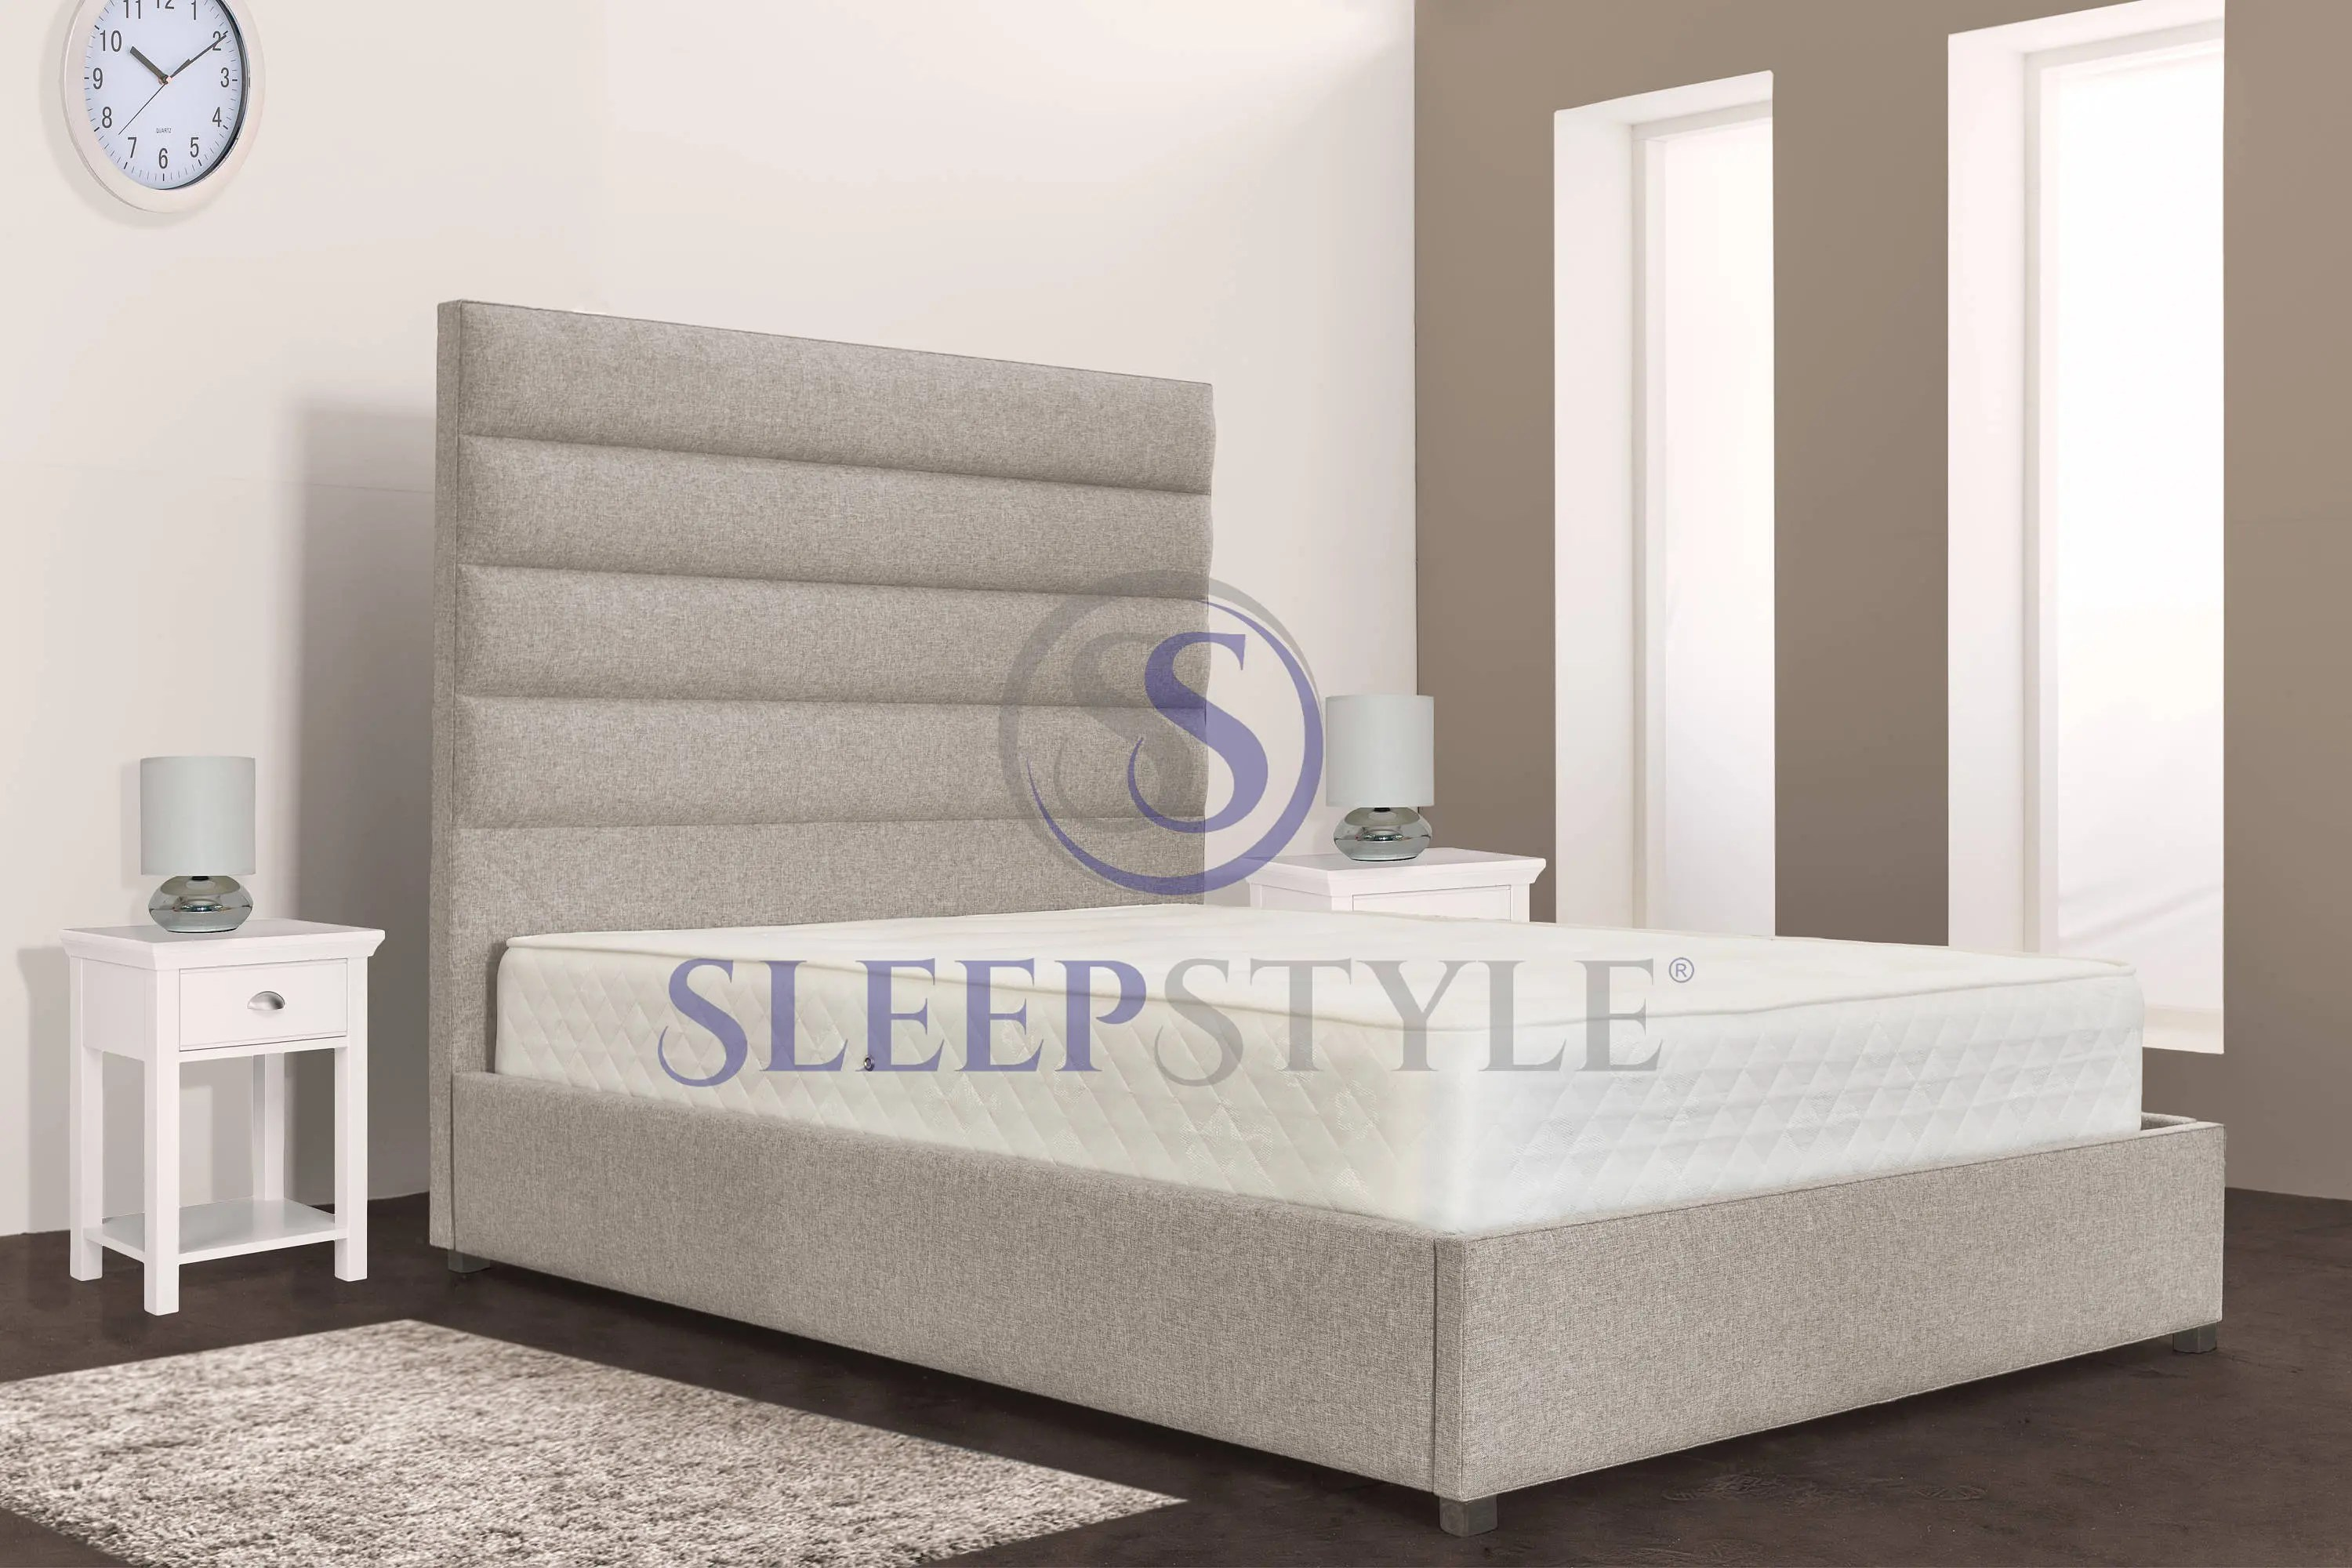 4ft6 Bed Frame Clifton Upholstered Bed Frame All Sizes Choice Of Colours 3ft Single 4ft Small Double 4ft6 Double 5ft Kingsize 6ft Superking